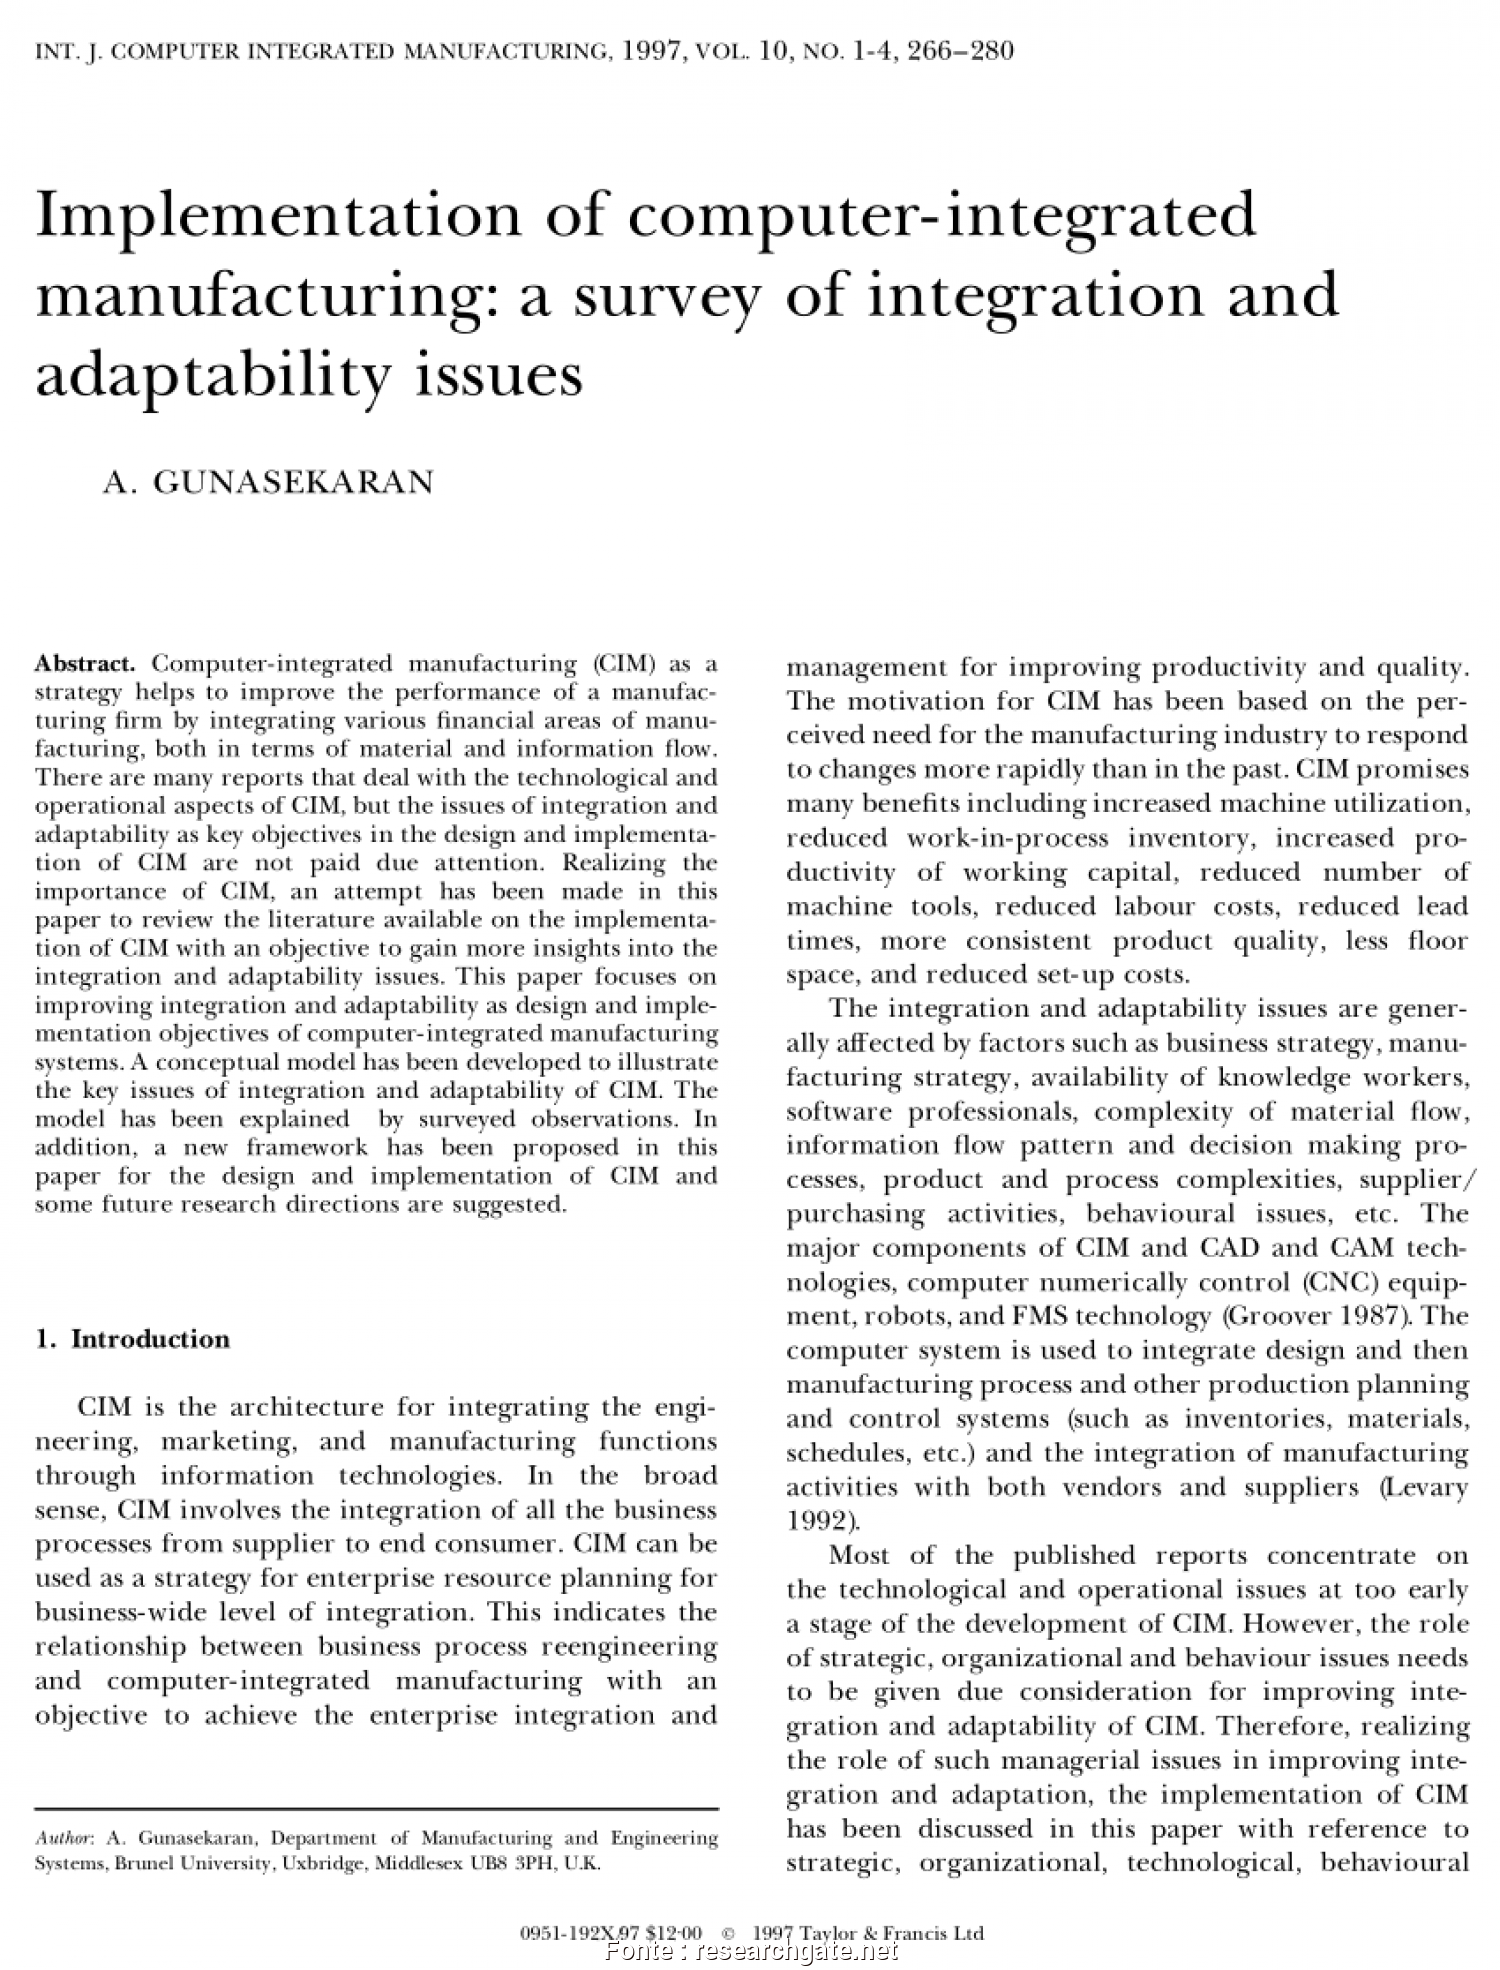 Cim Salotti Sense, Locale (PDF) Planning, Design Of Computer Integrated Manufacturing Systems Using An Expert System